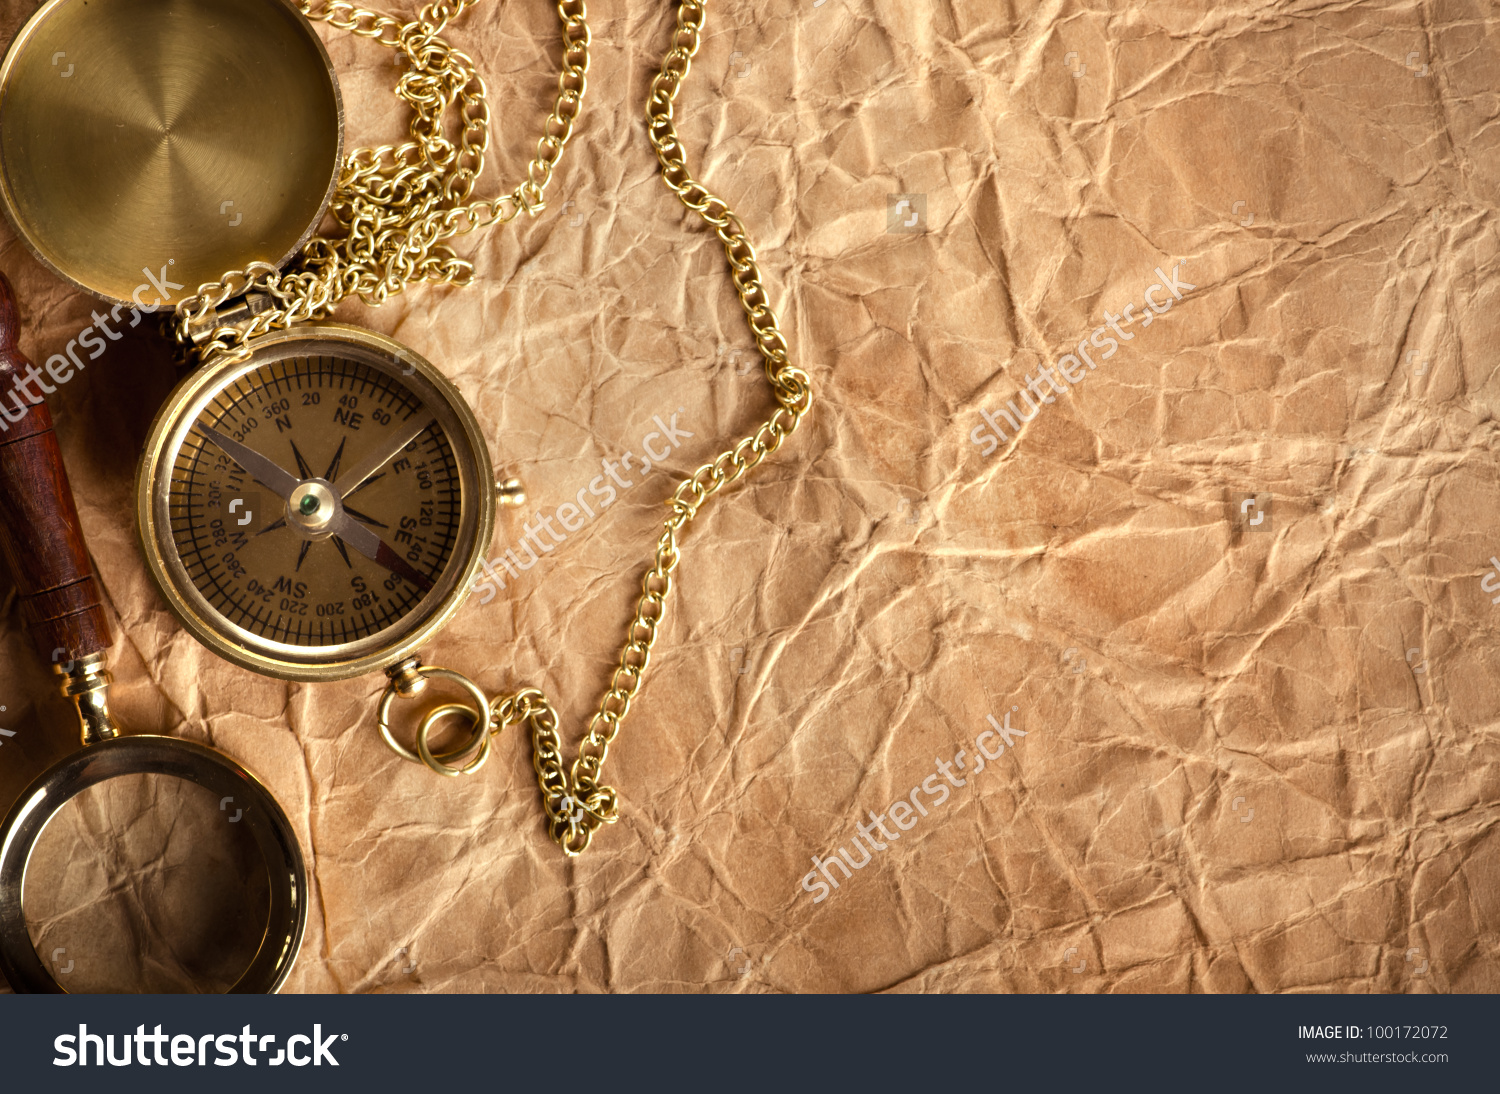 Adventure Background Stock Photo 100172072 - Shutterstock